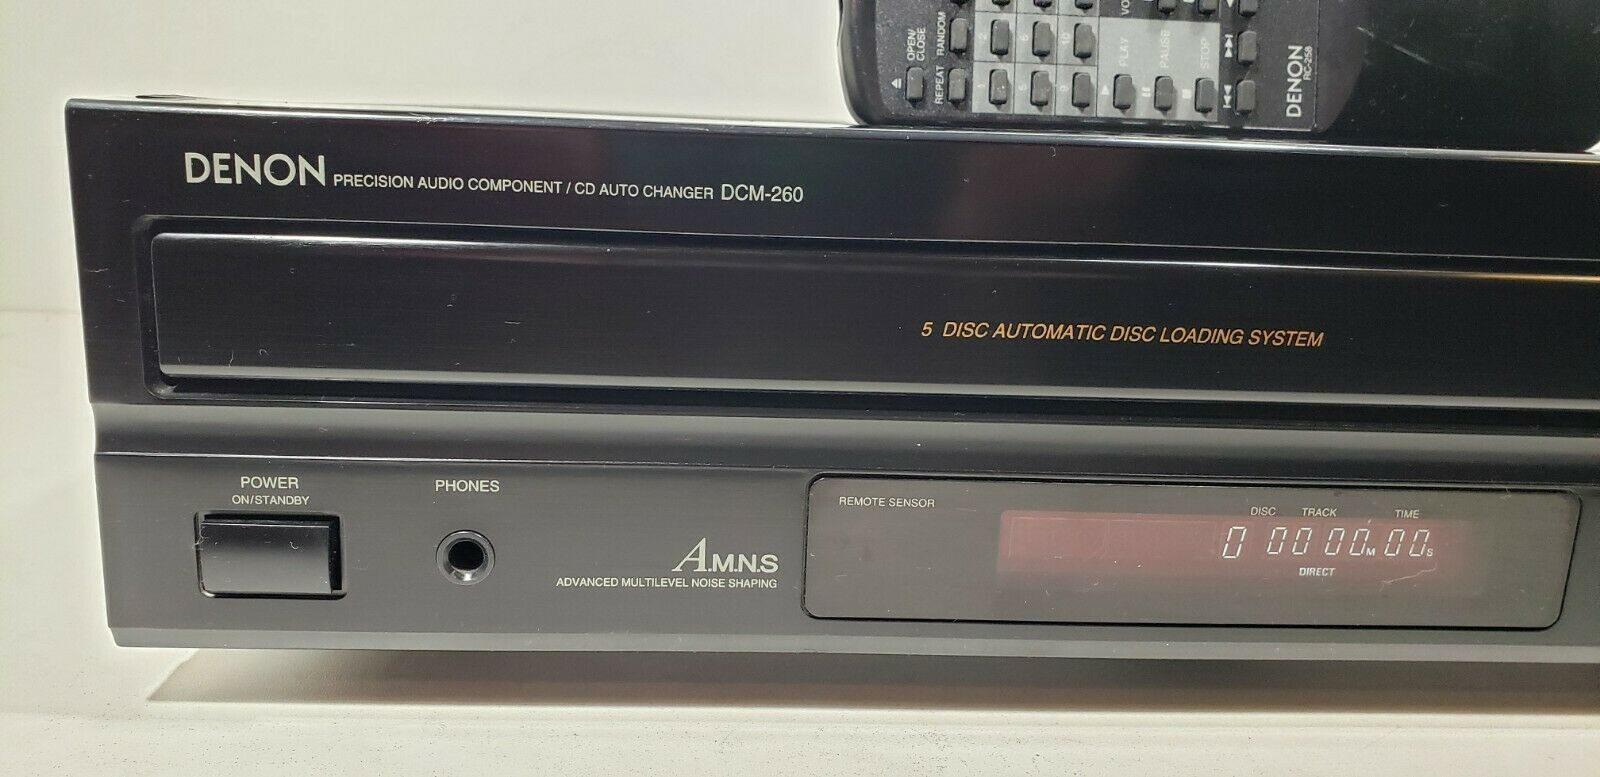 Denon 5- Disc Precision Audio CD Changer DCM-260 With Remote...Tested